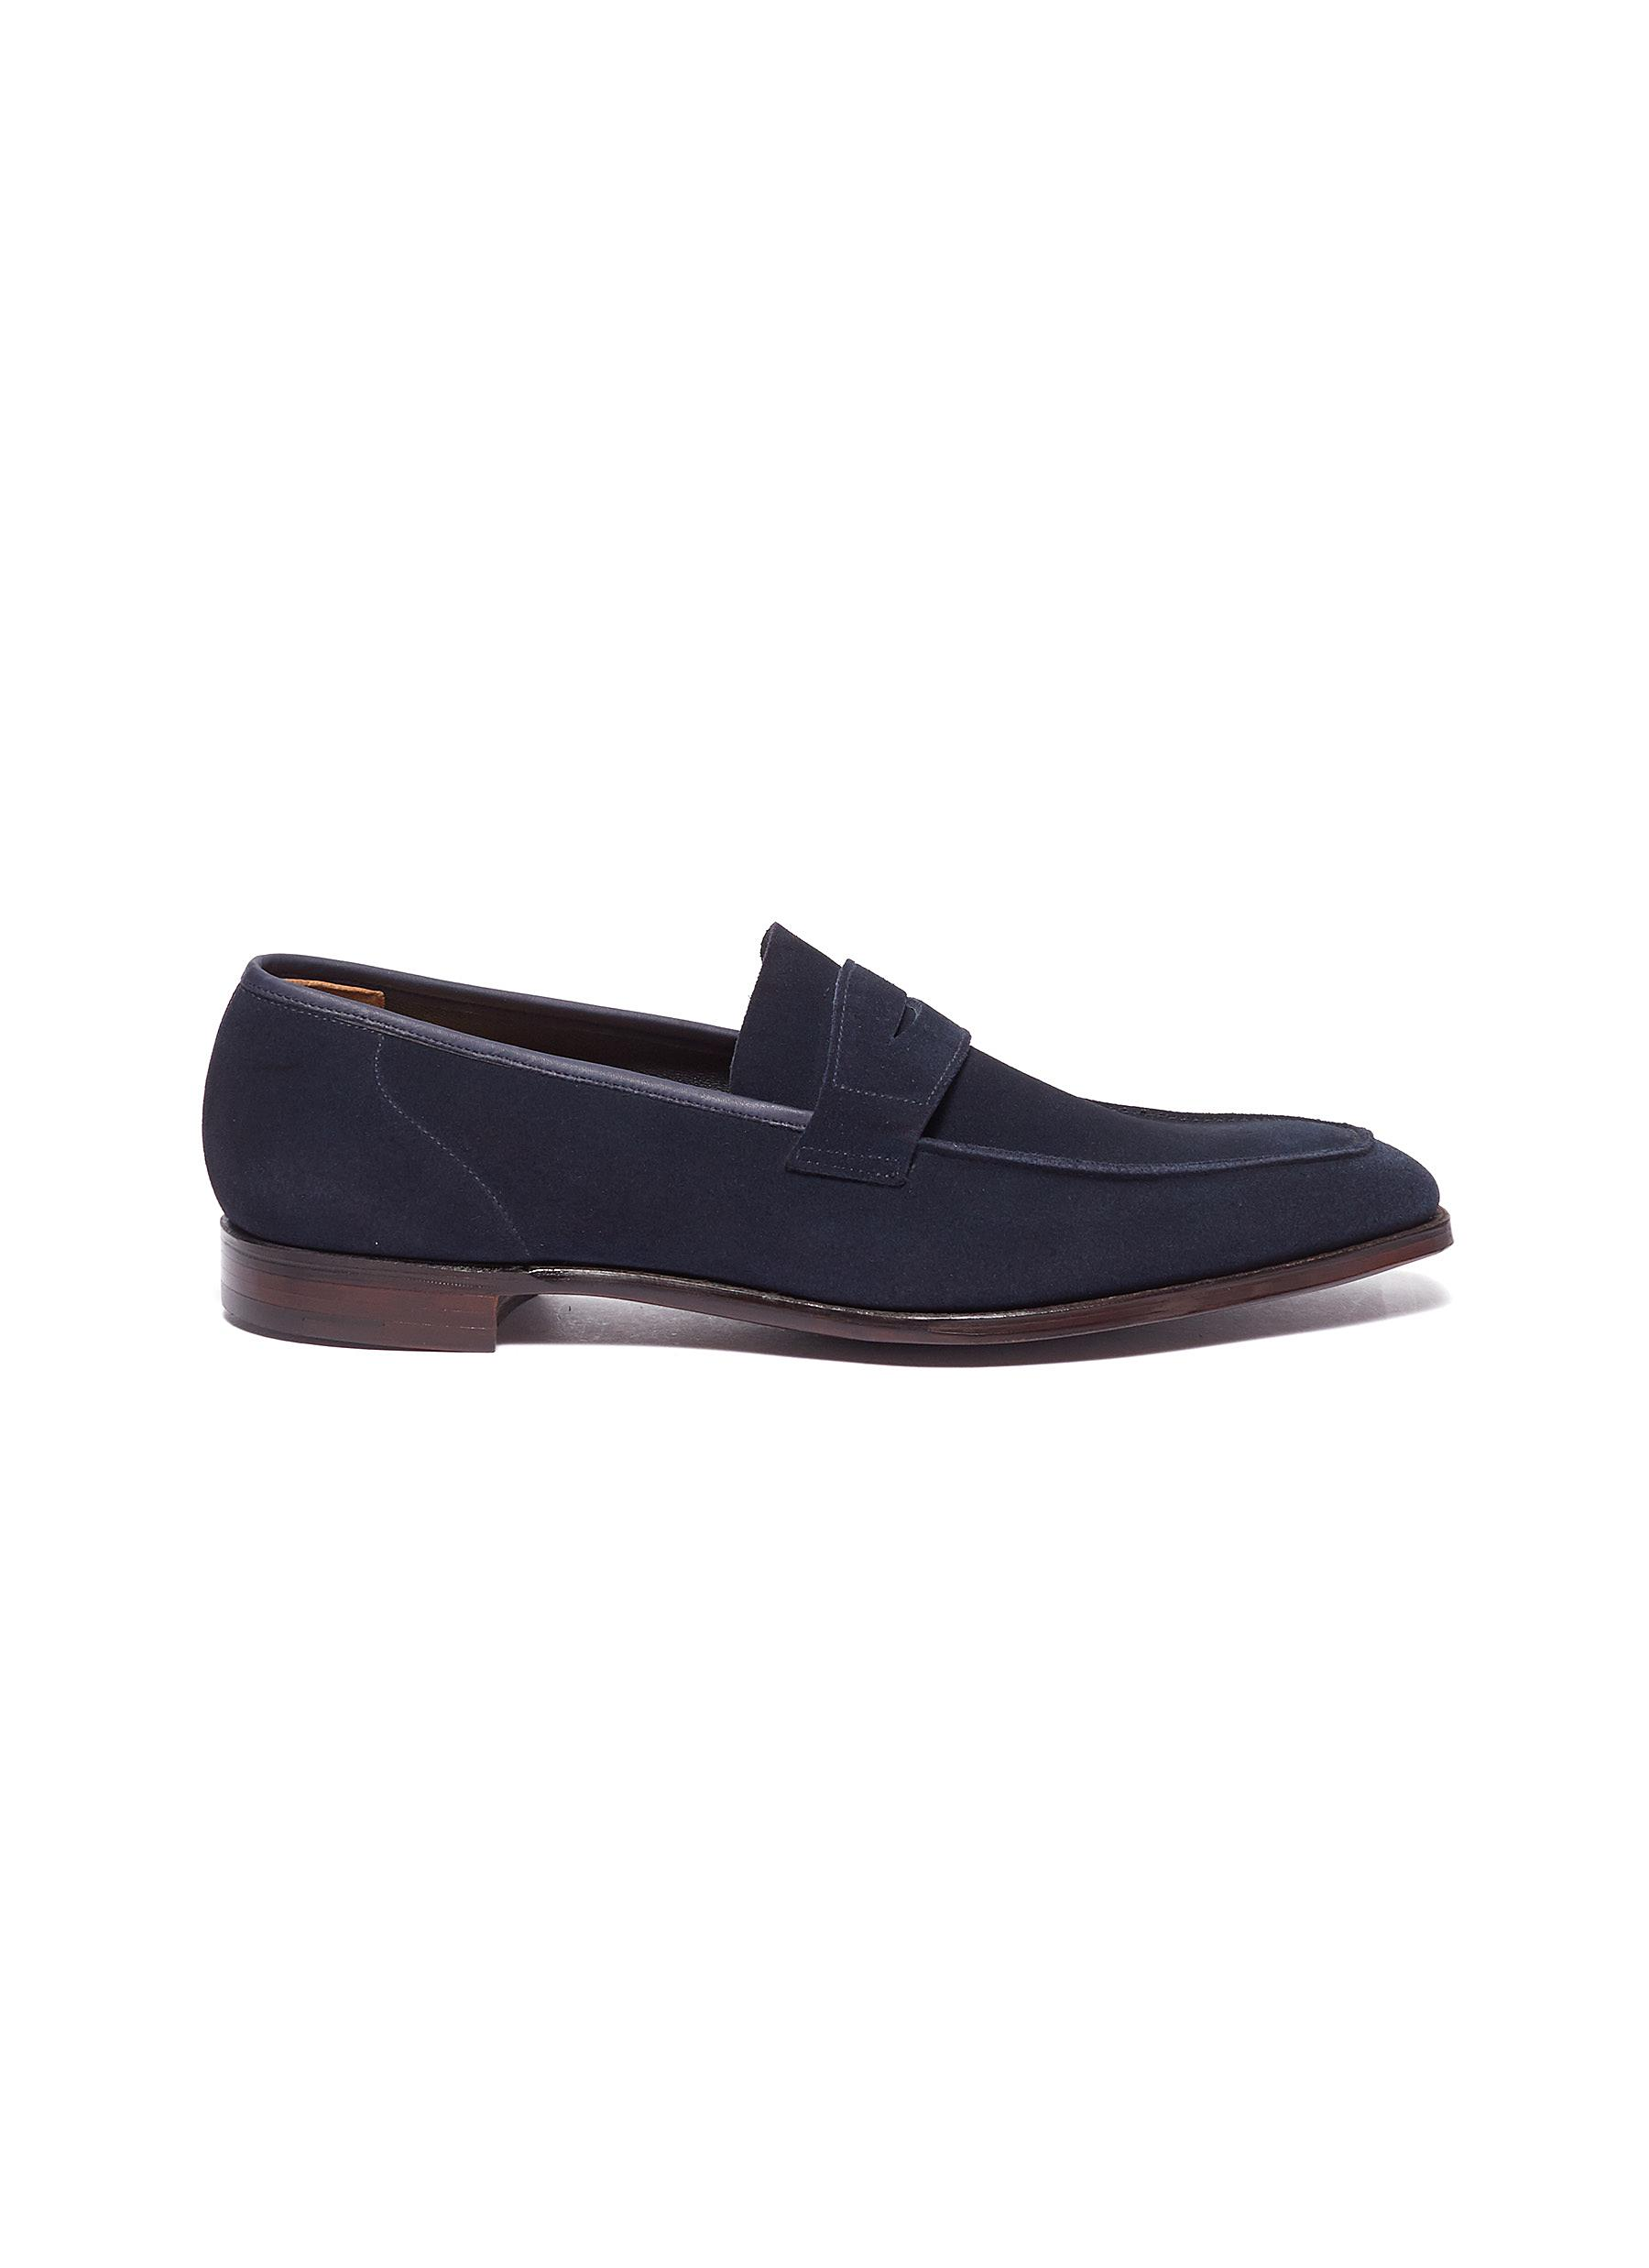 'George' suede penny loafers